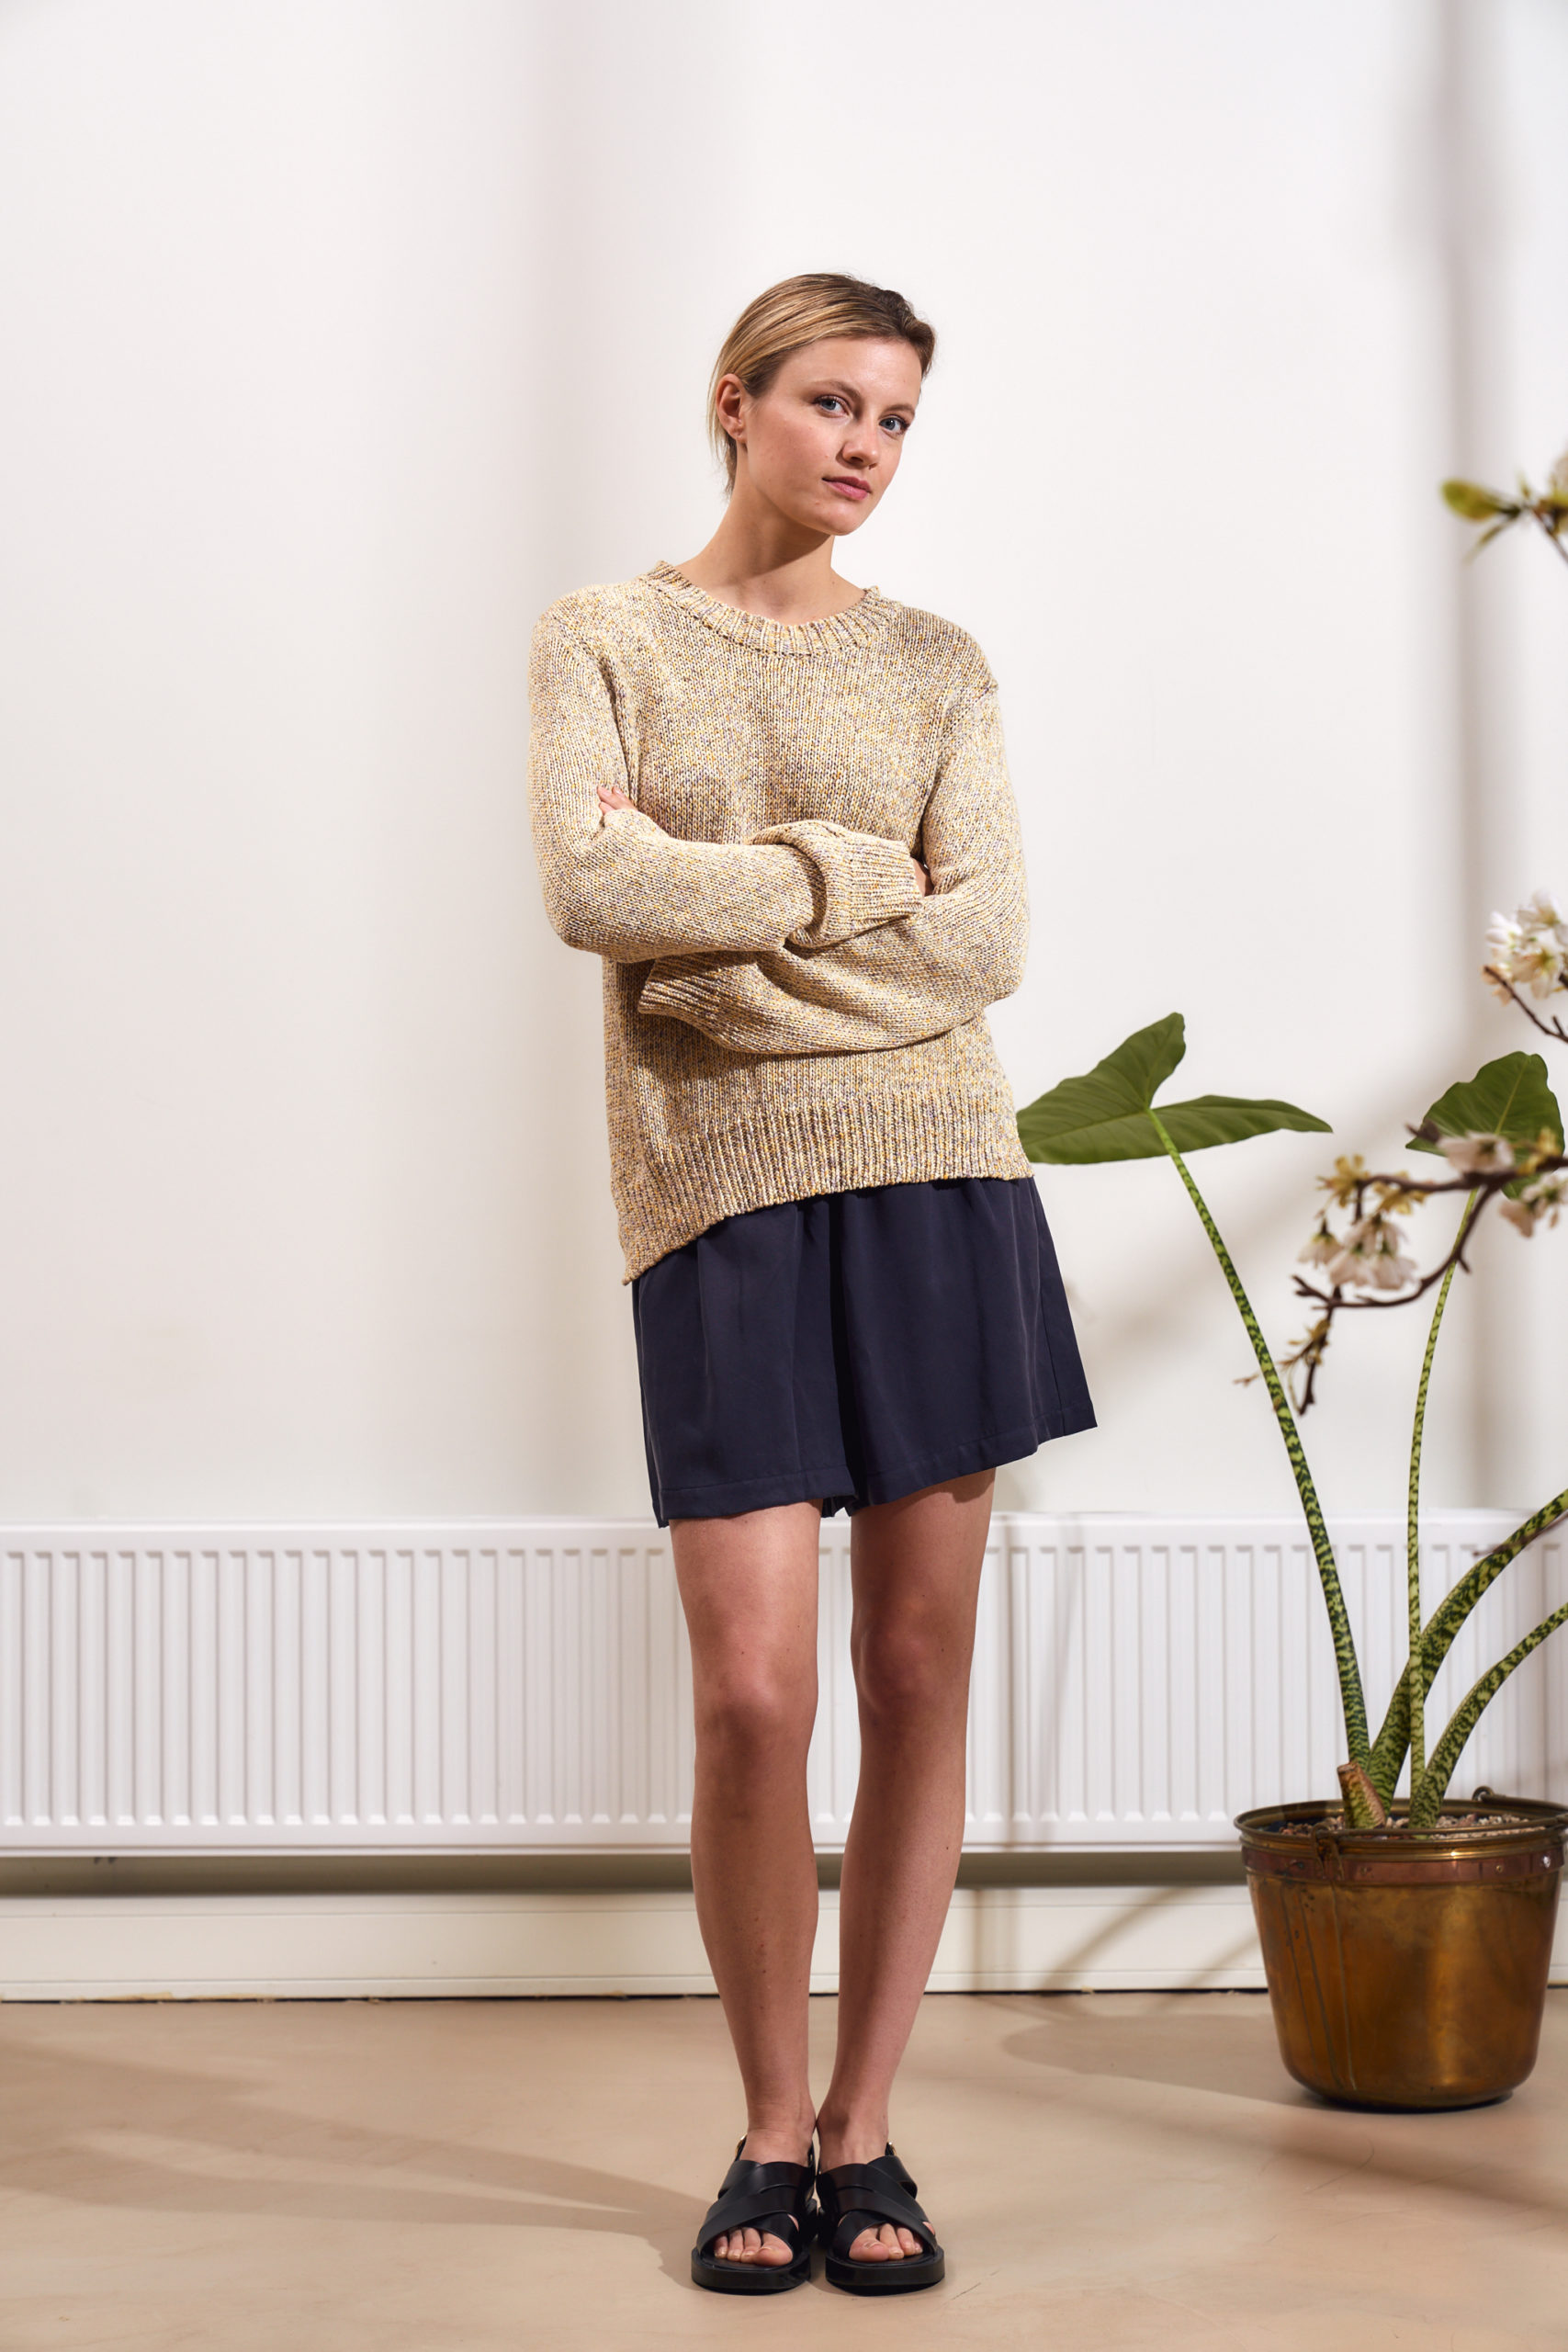 Knit-ted_S20-Shot13-224